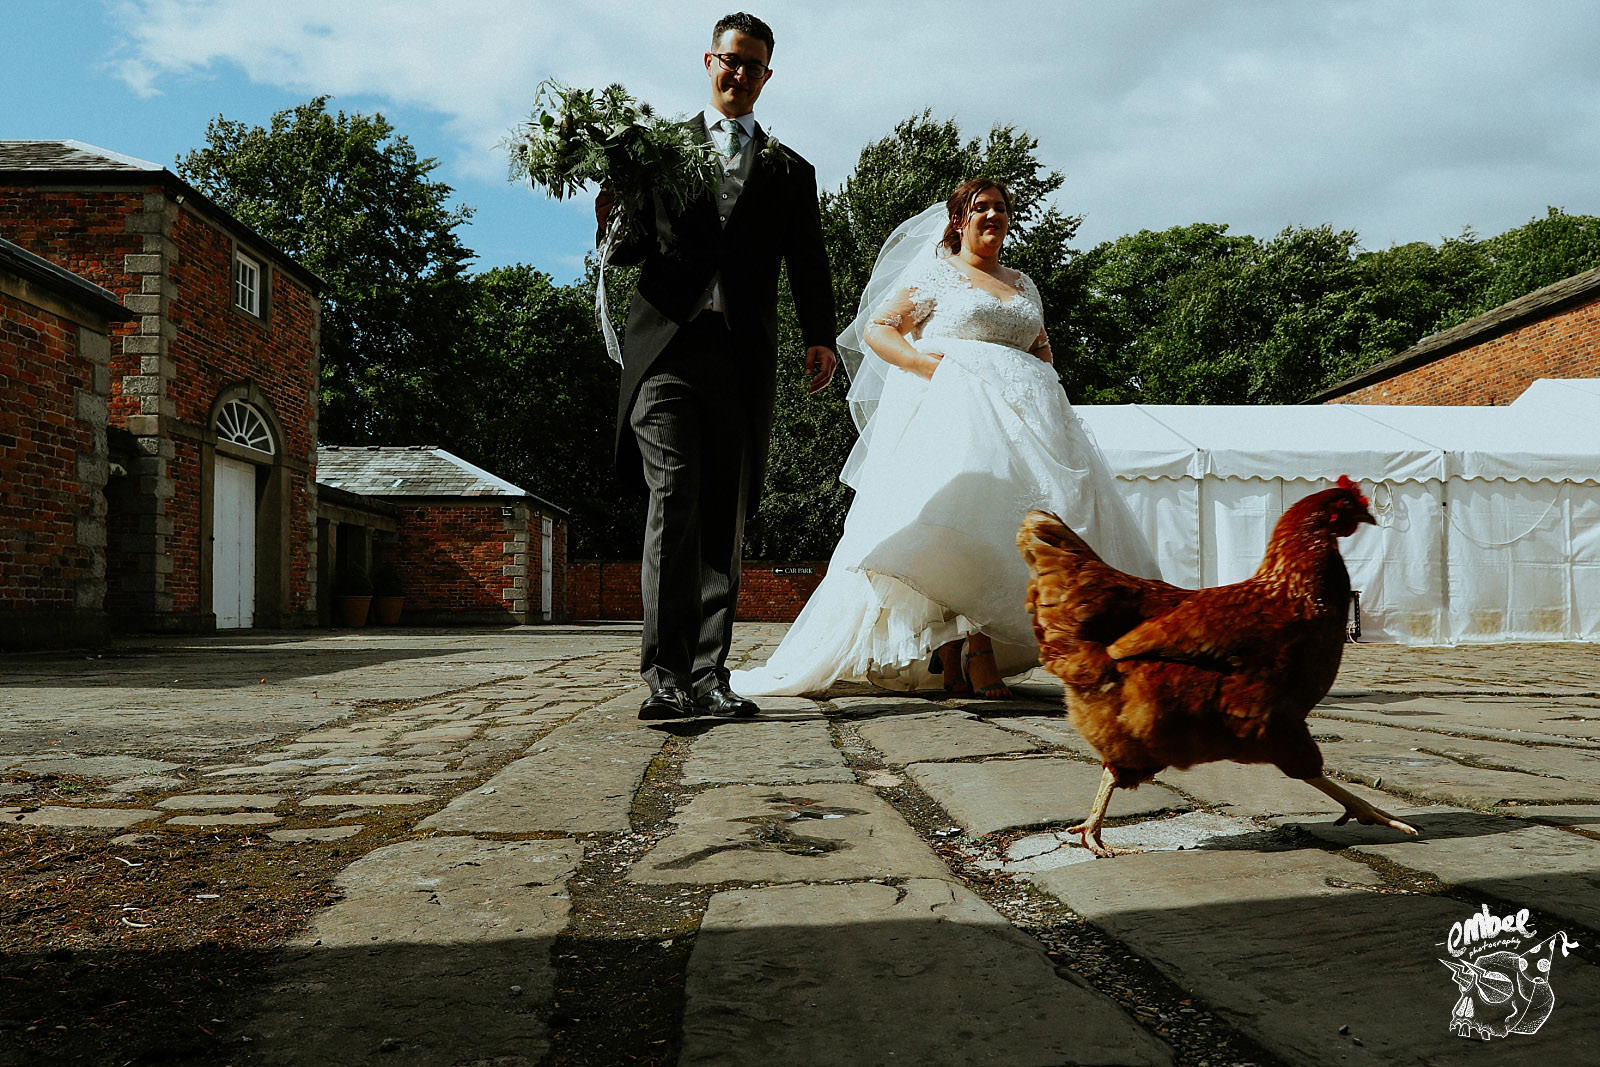 chicken runs infront of bride and groom as they walk past